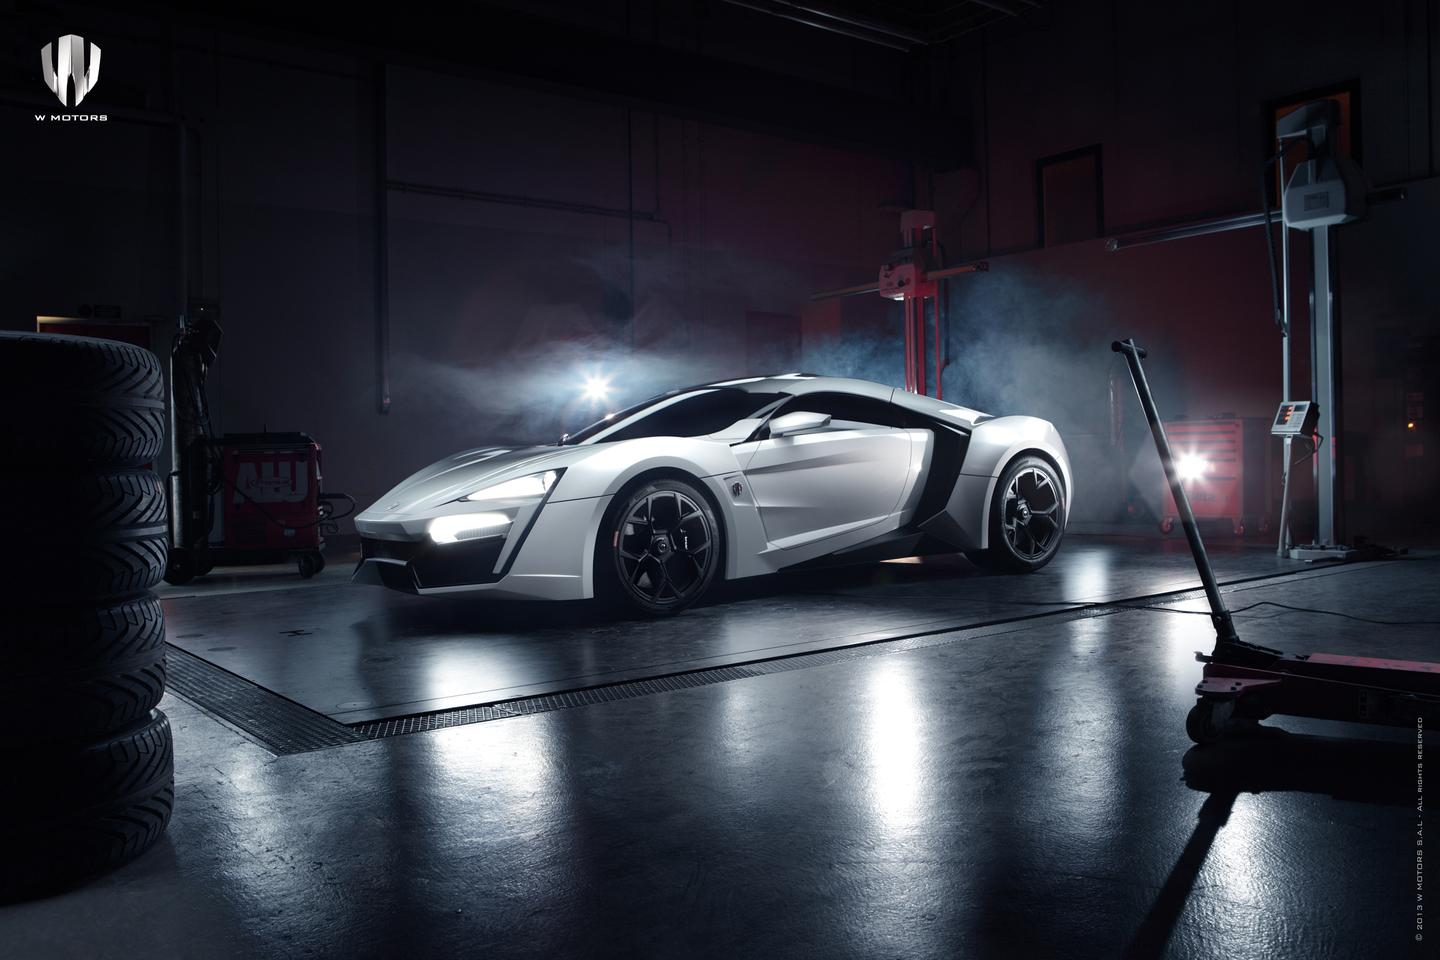 The $3.4 million Lykan Hypersports from W Motors